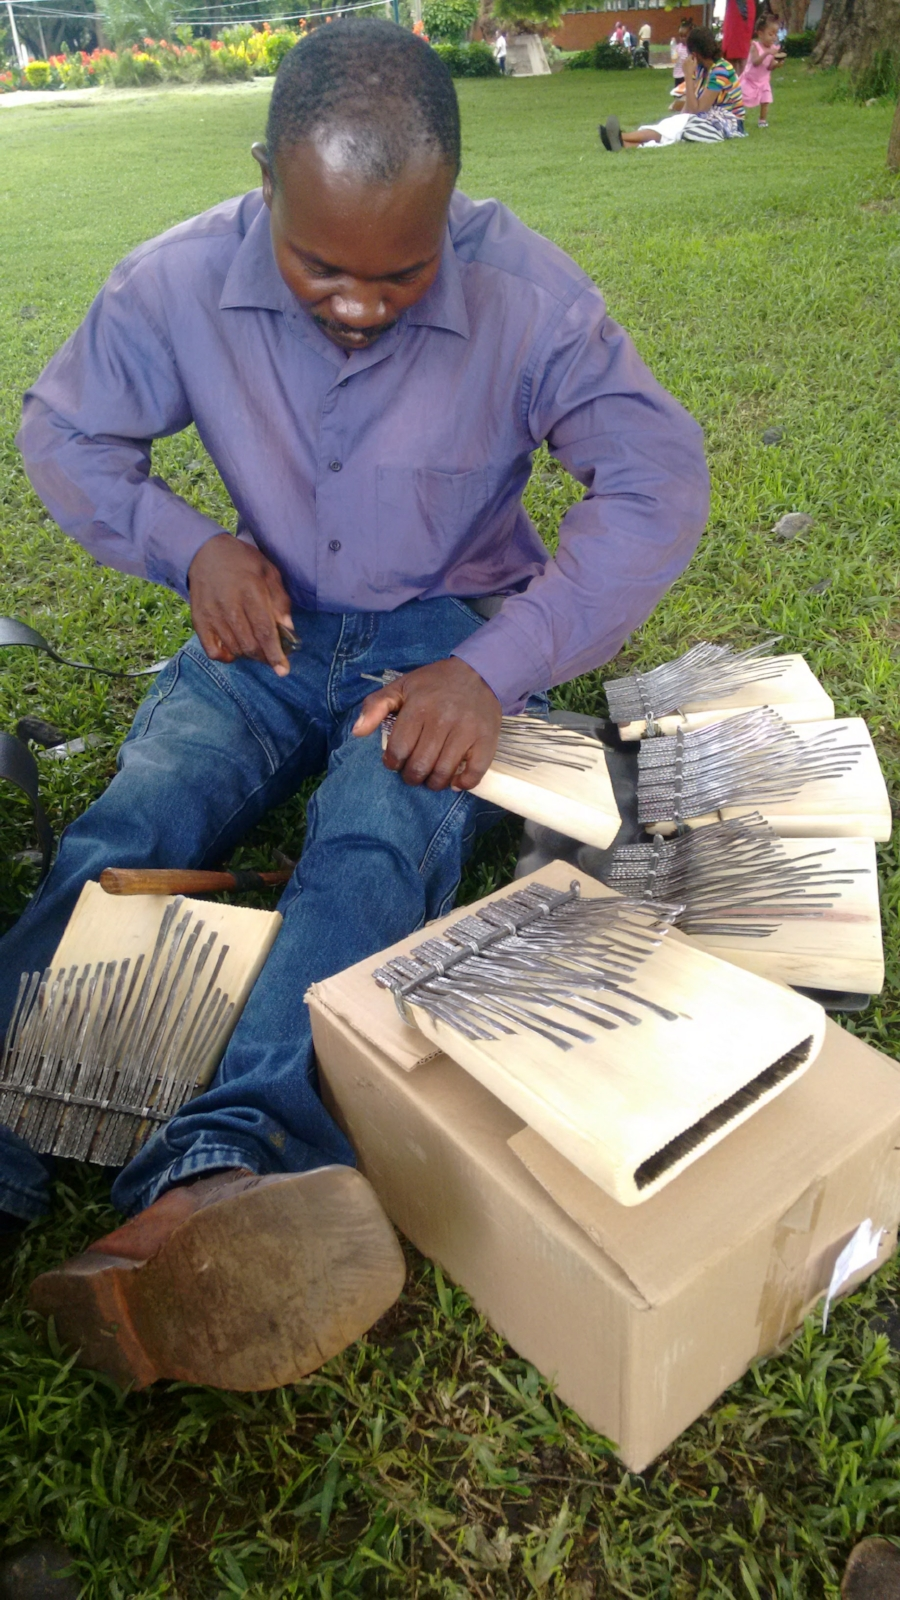 James Kamwaza tuning hera mbira in the park before shipping them.